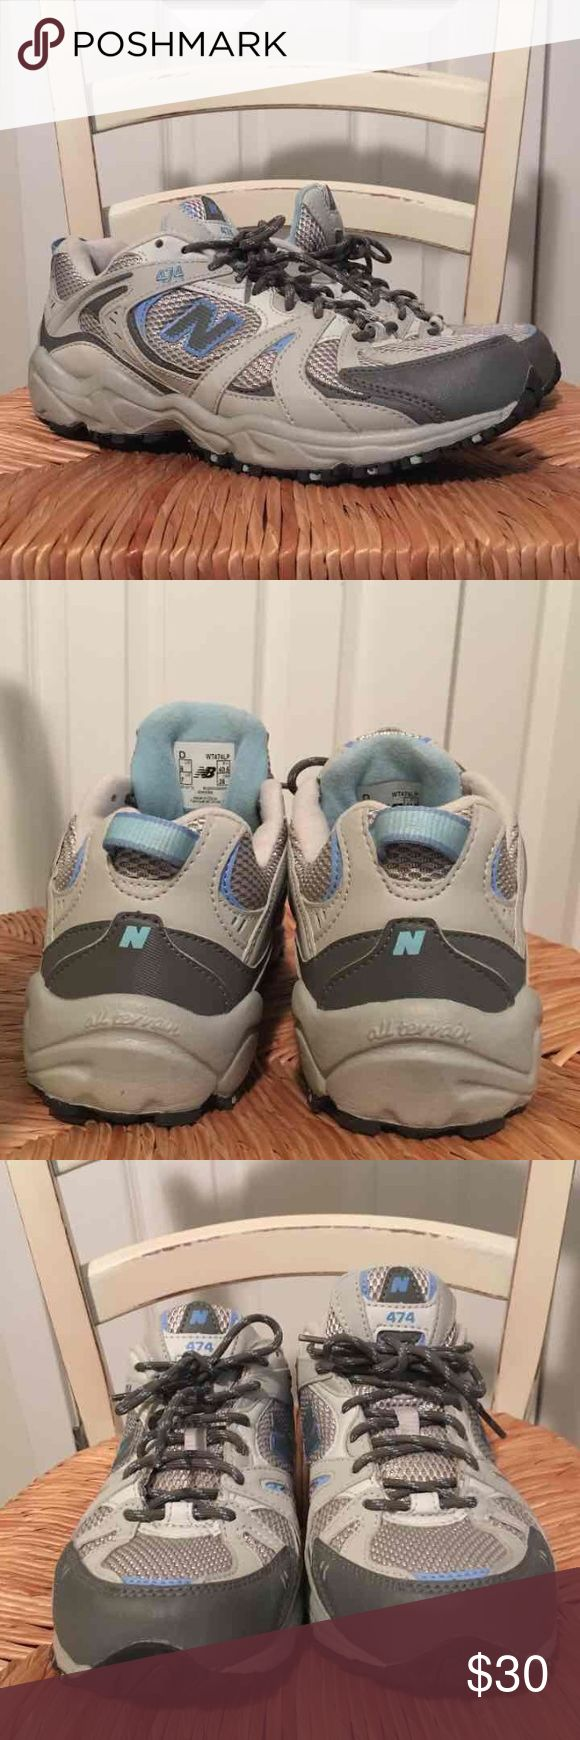 "Like New, Women's New Balance Sneakers, Size US 9 Beautiful, LIKE NEW, Women's Gray & Blue New Balance Sneakers, Size US 9. Condition: no marks, clean bottoms (see pictures). Marked ""474 all terrain"" New Balance Shoes Sneakers"